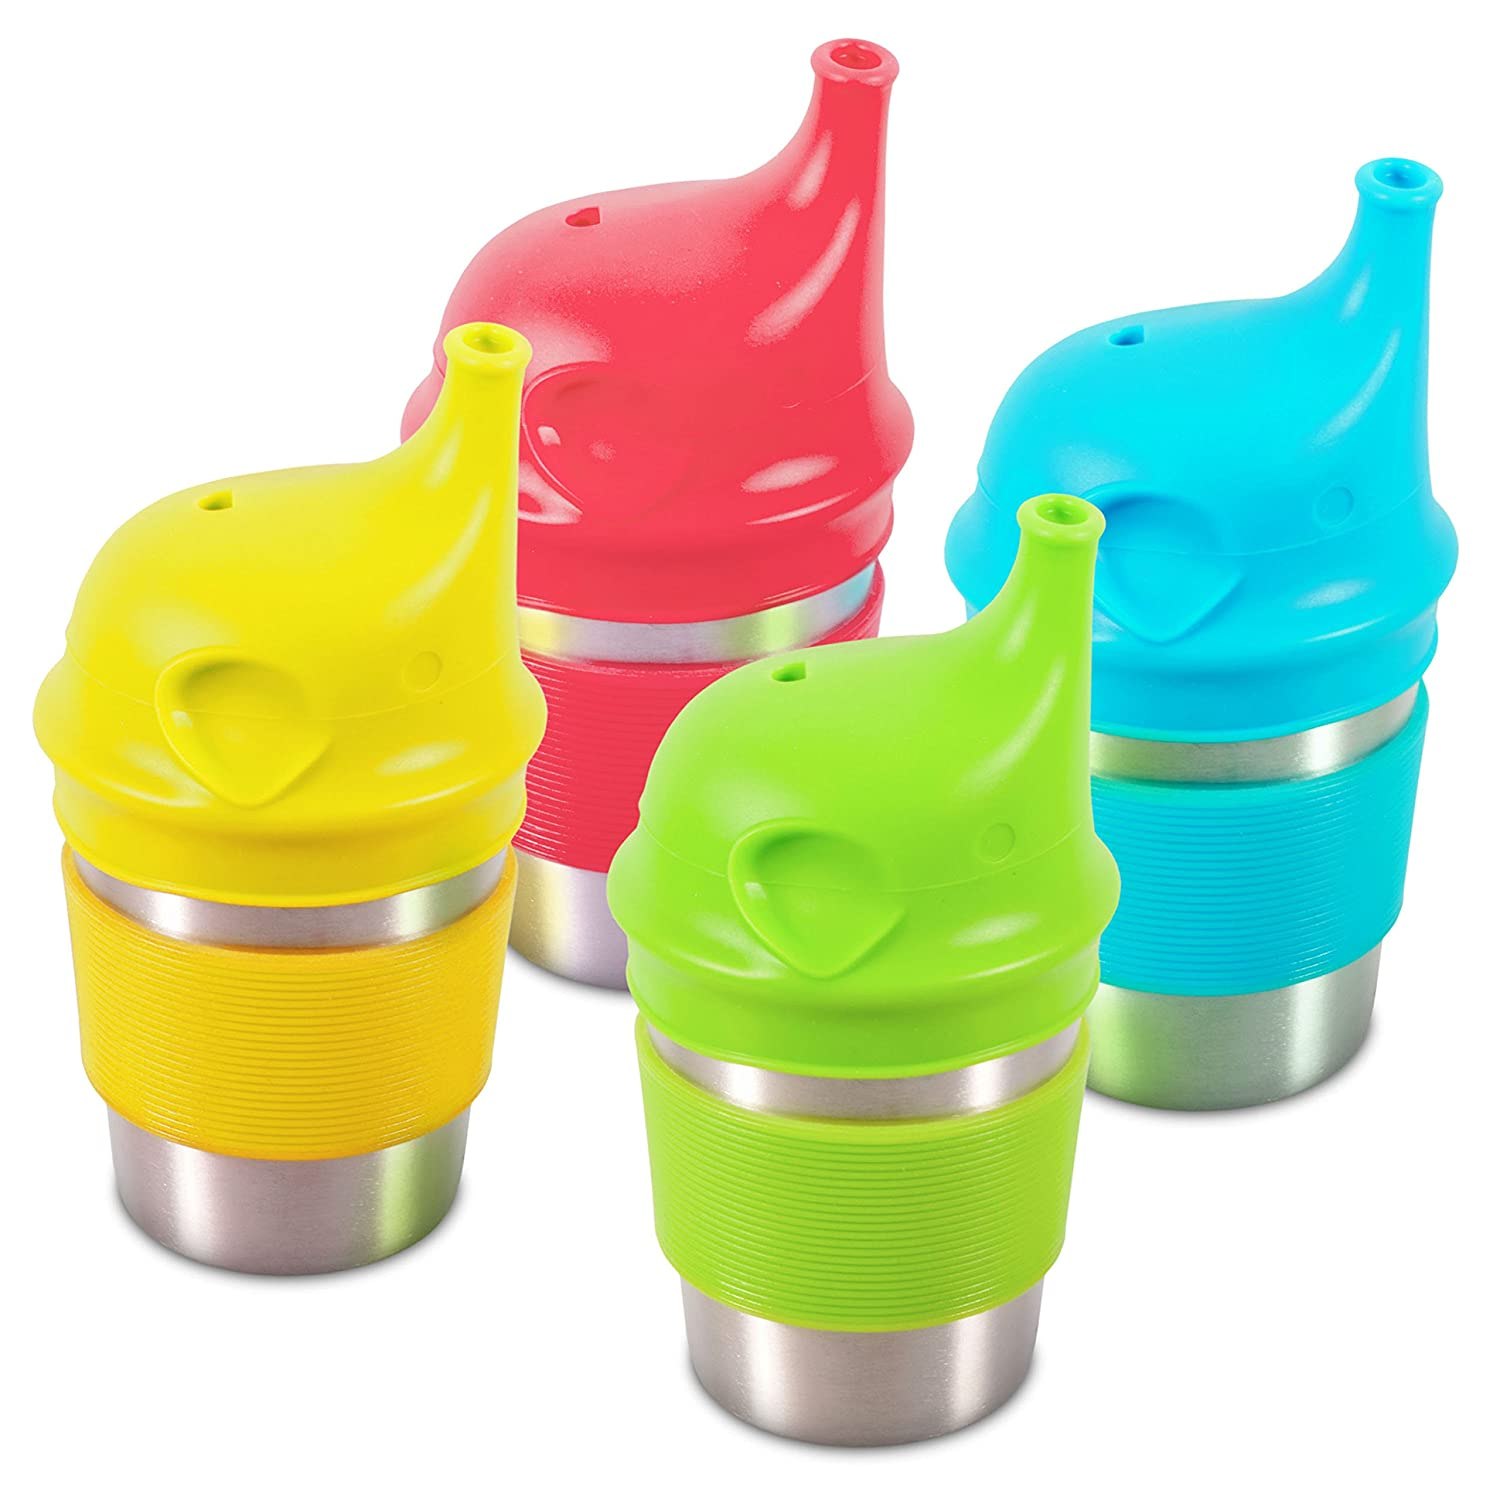 Sippin' Steel Stainless Sippy Cups for Toddlers with Silicone Grip and Lid, 8oz (4-Pack)